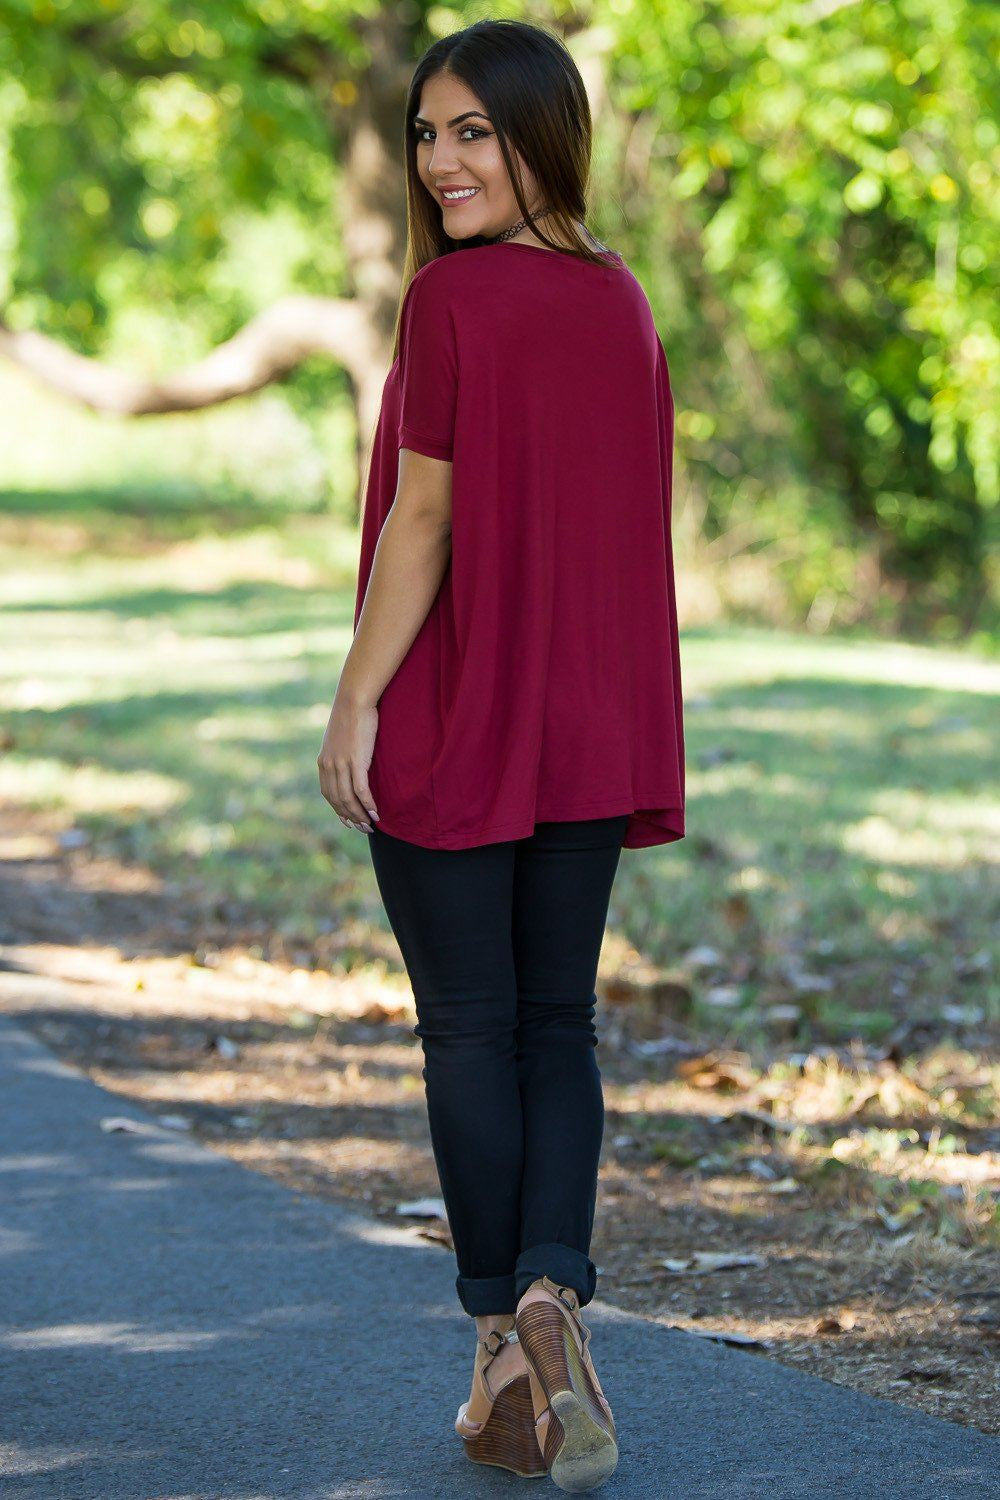 Short Sleeve V-Neck Piko Top - Wine - Piko Clothing - 2